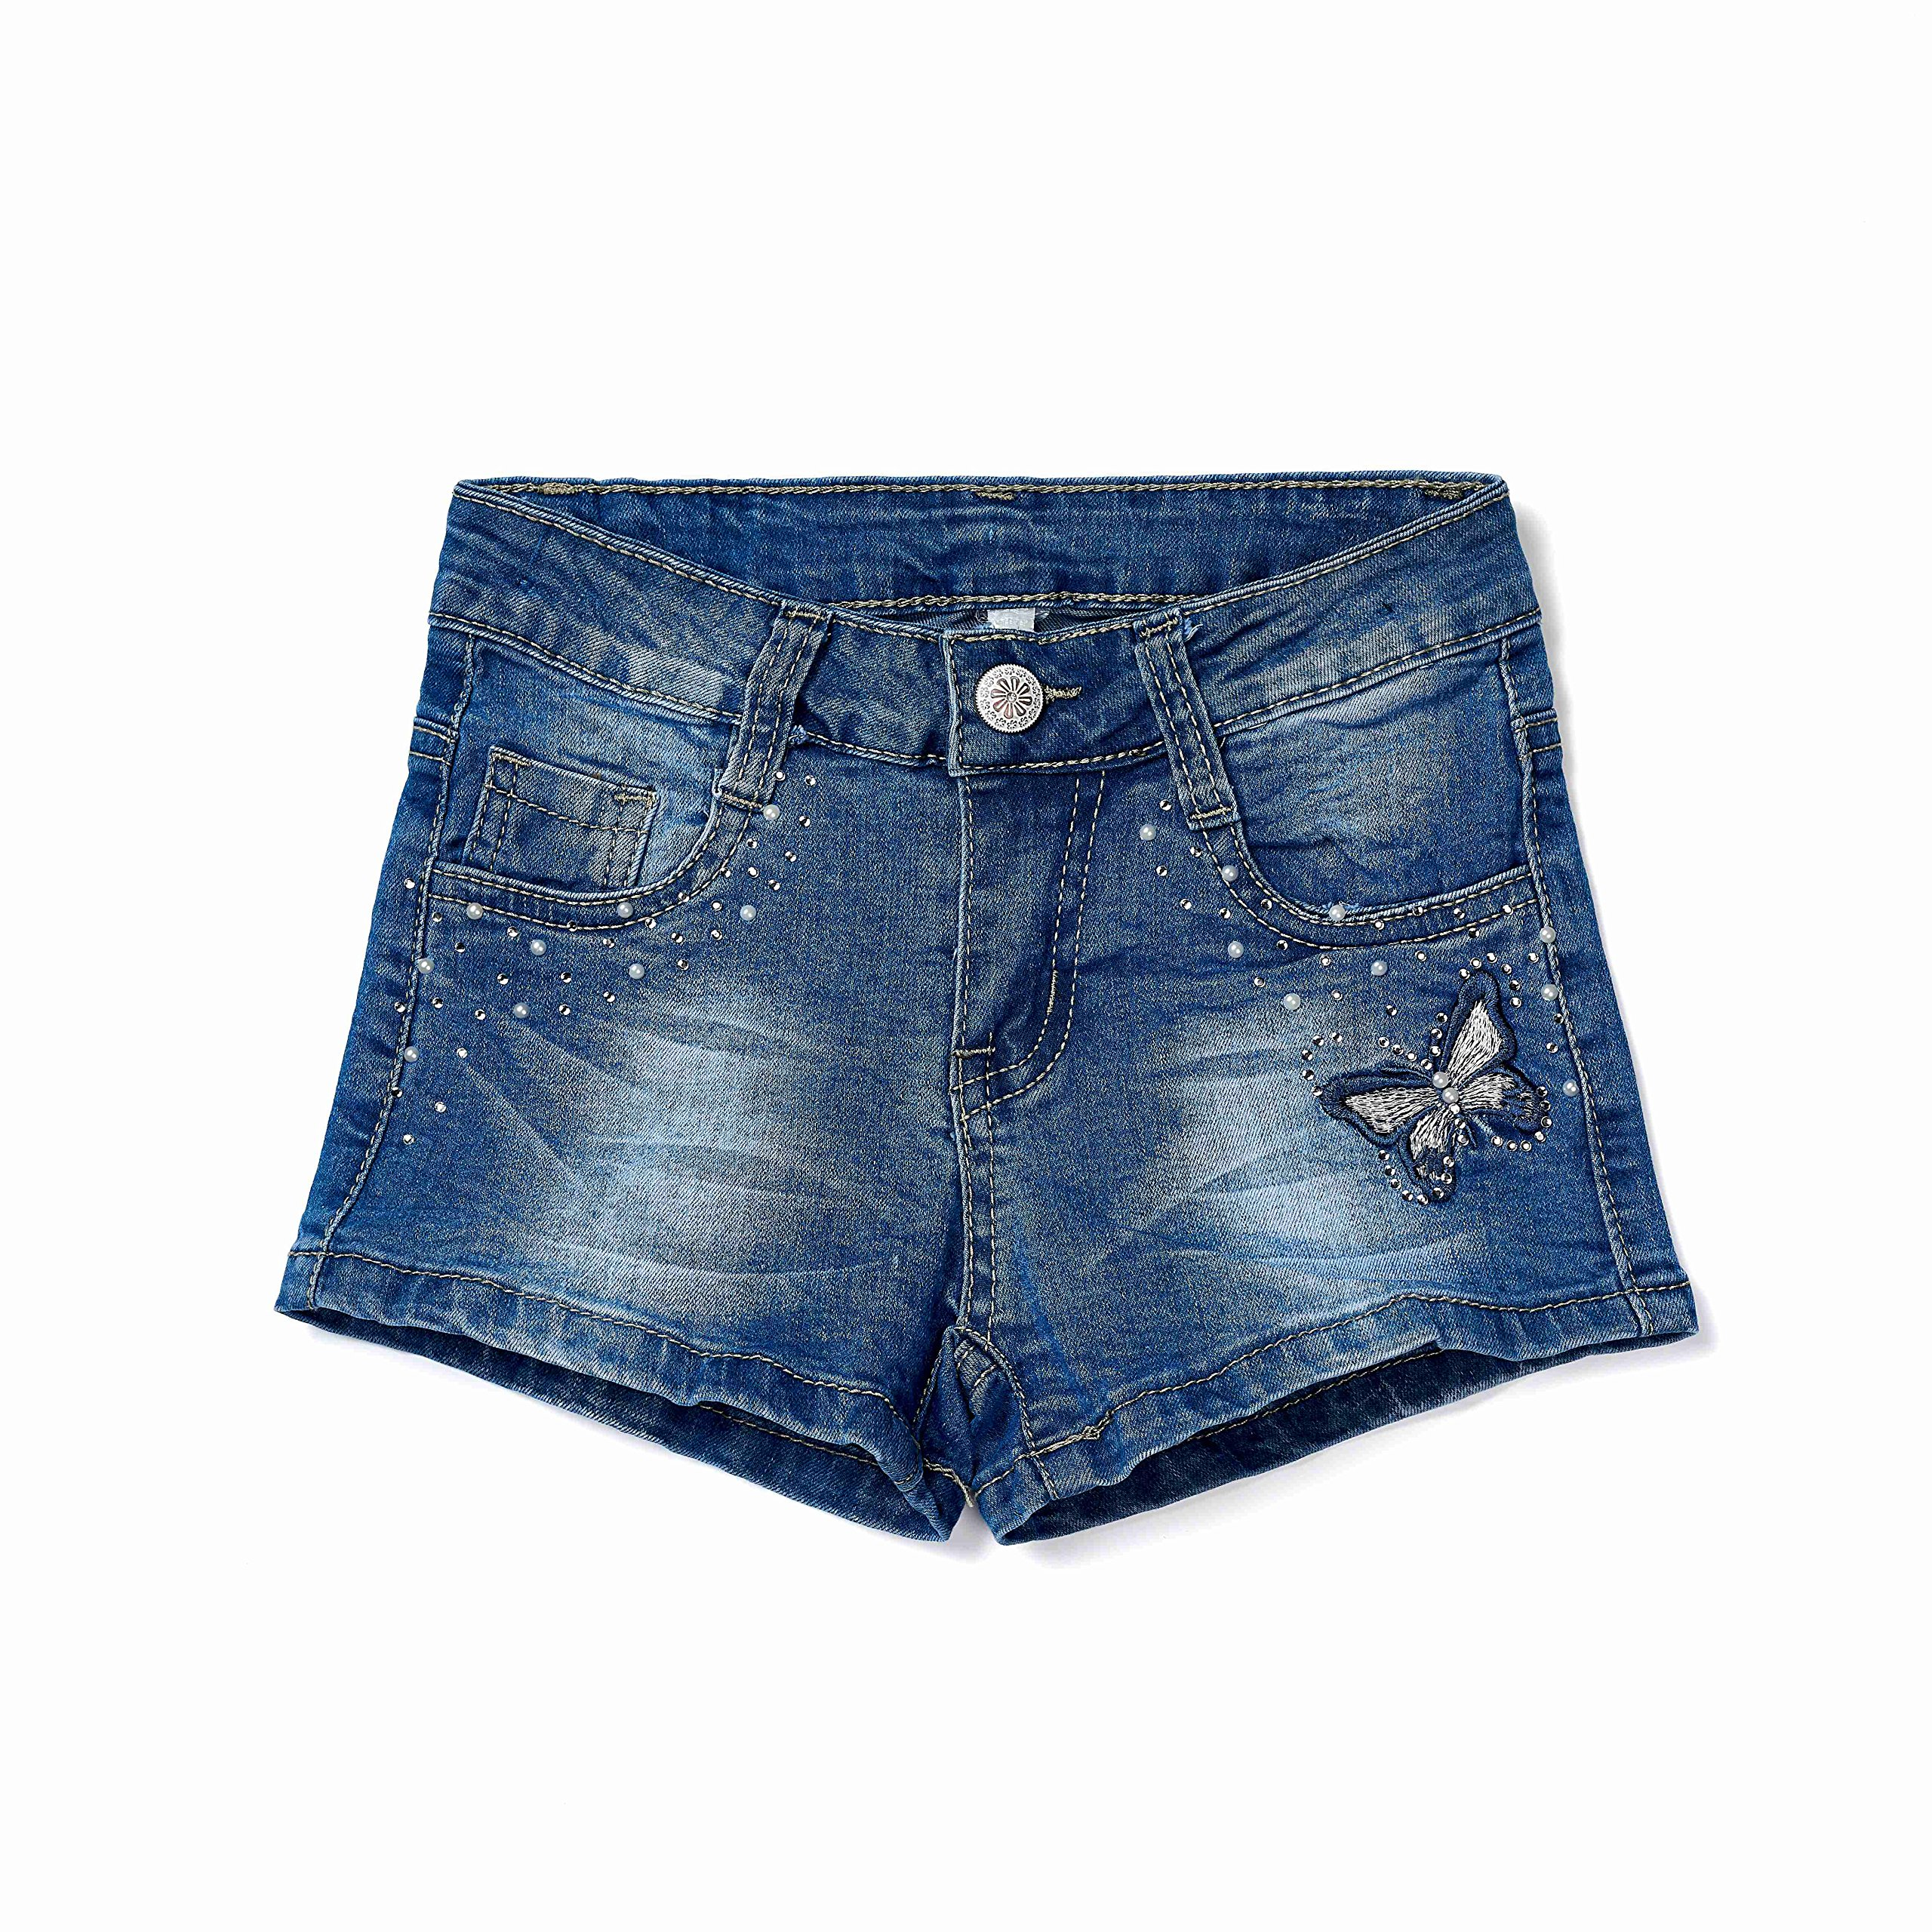 ISPED Girls Jean Shorts for Teen Girls Ripped Girls Shorts Summer Floral Embroided Denim Jean Shorts Size 10Y